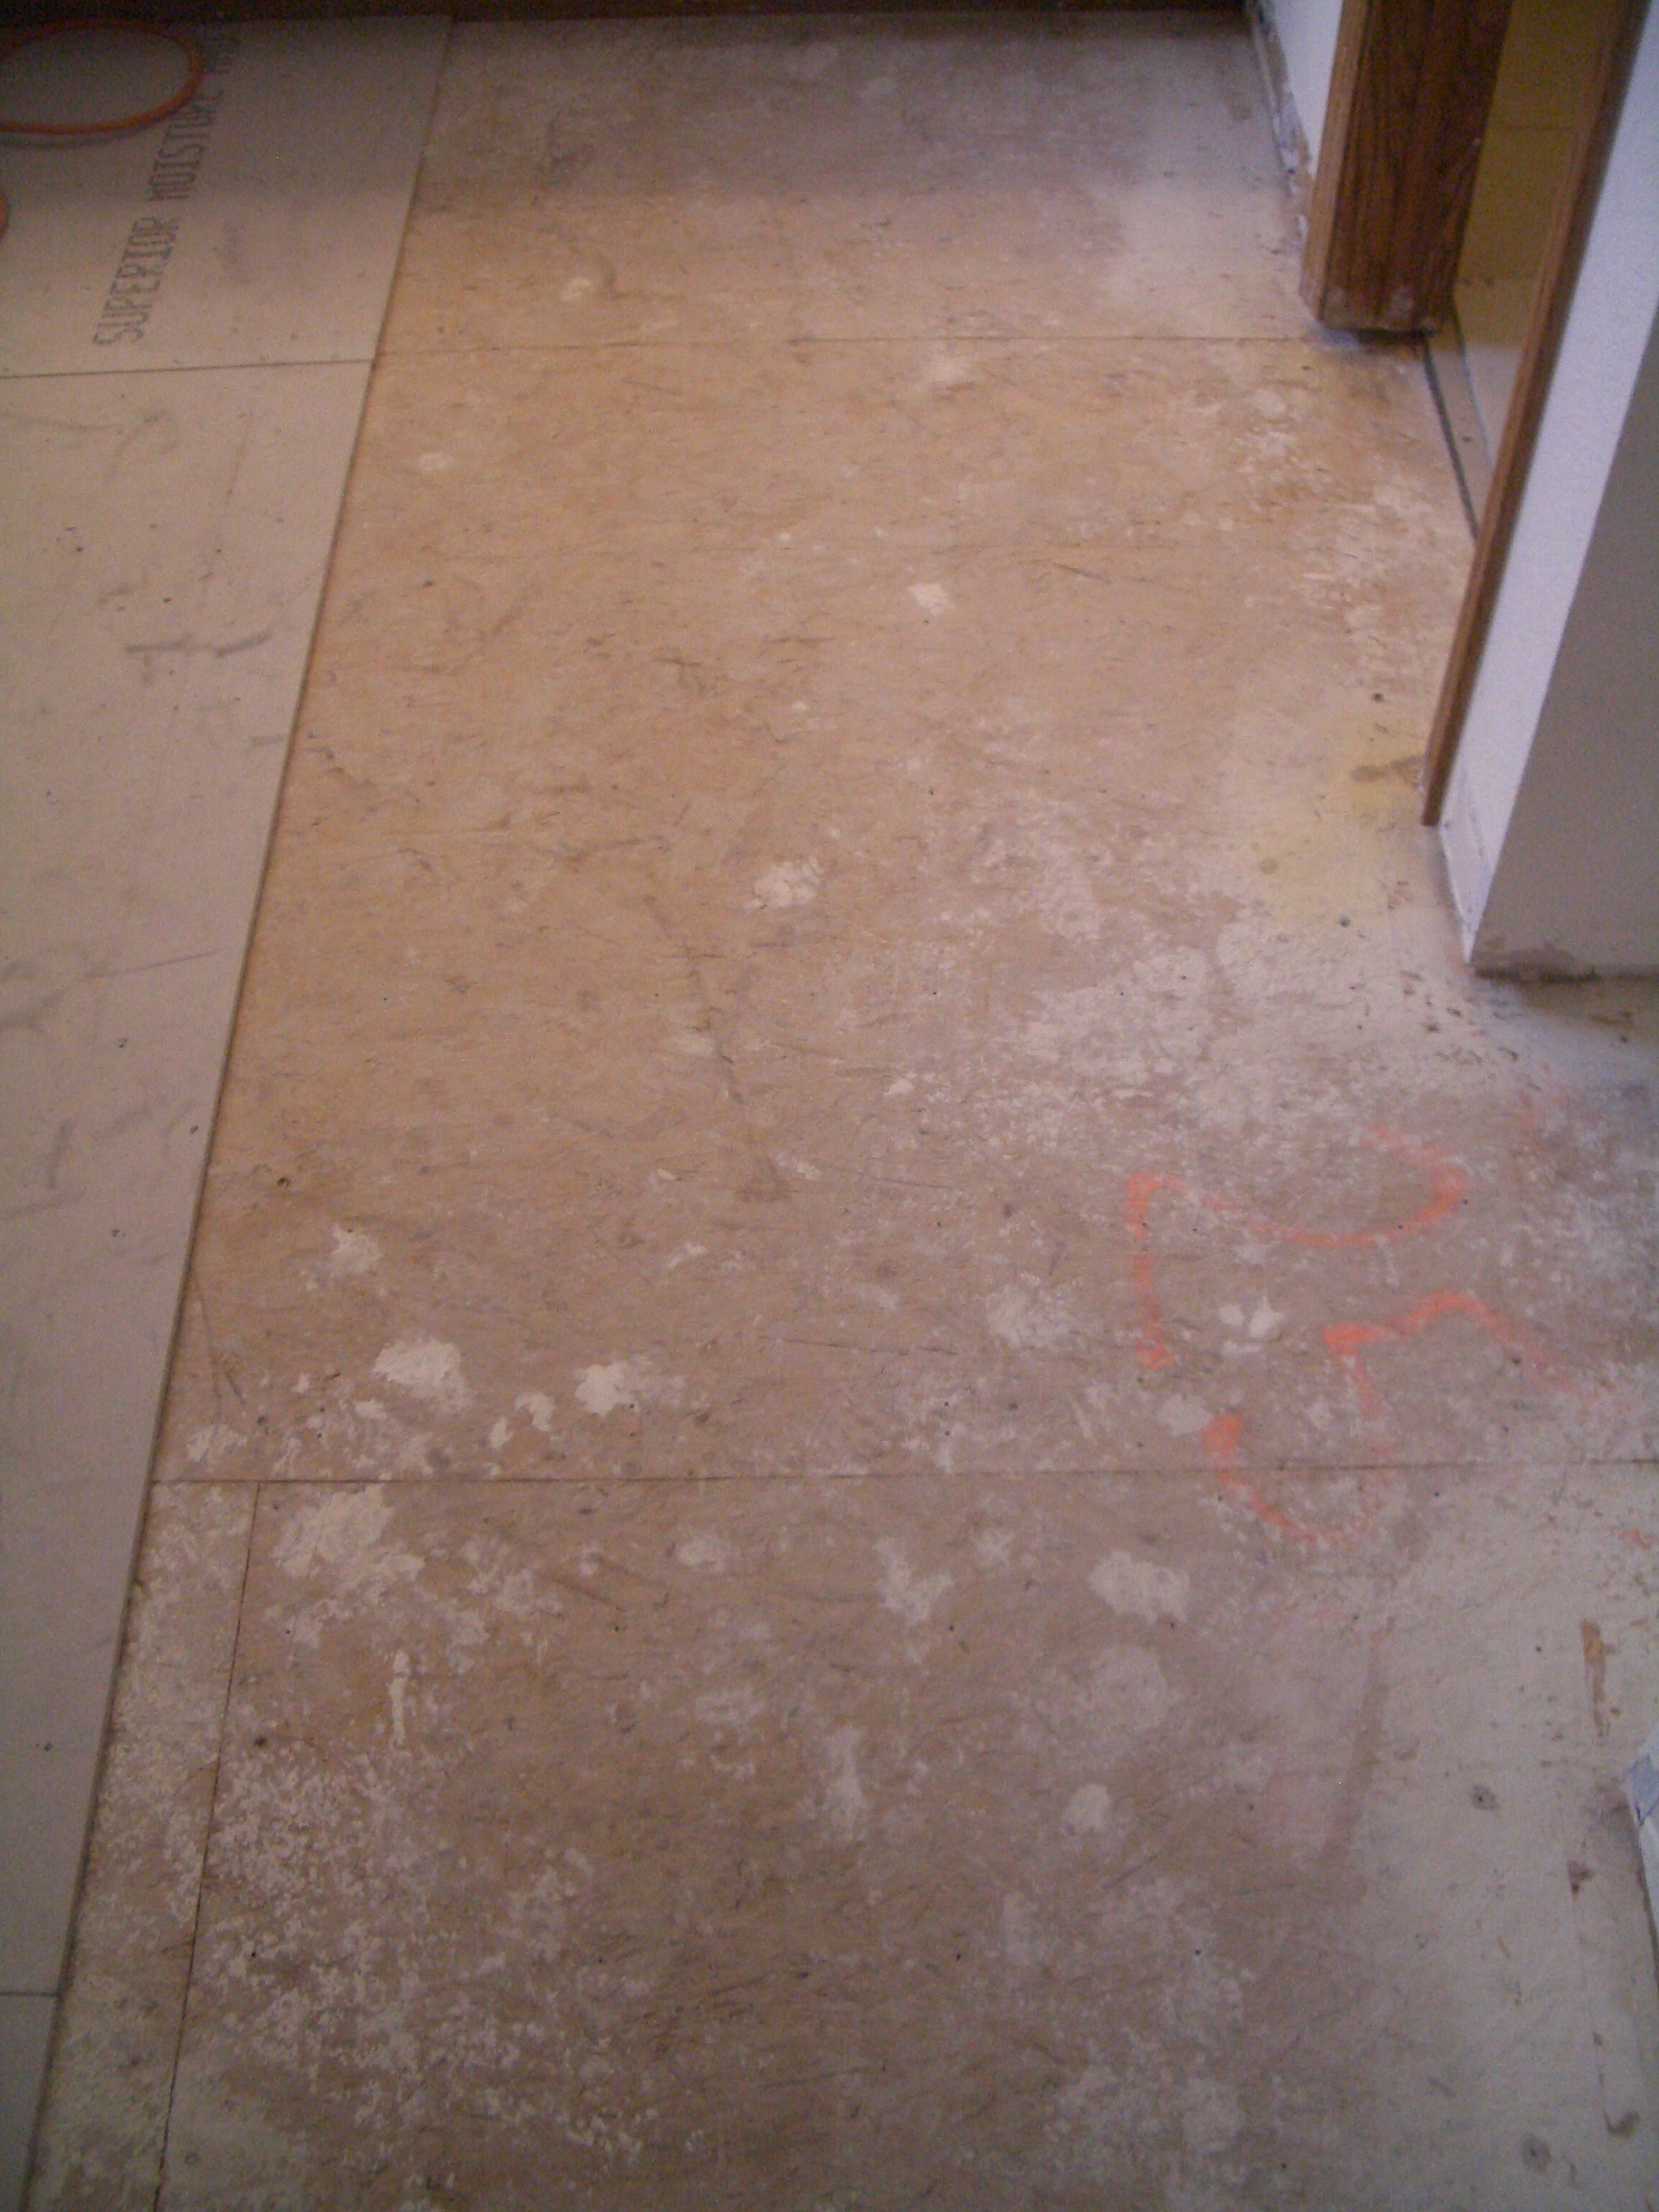 To install cement backerboard for floor tile dry fitting backerboard on floor dailygadgetfo Gallery